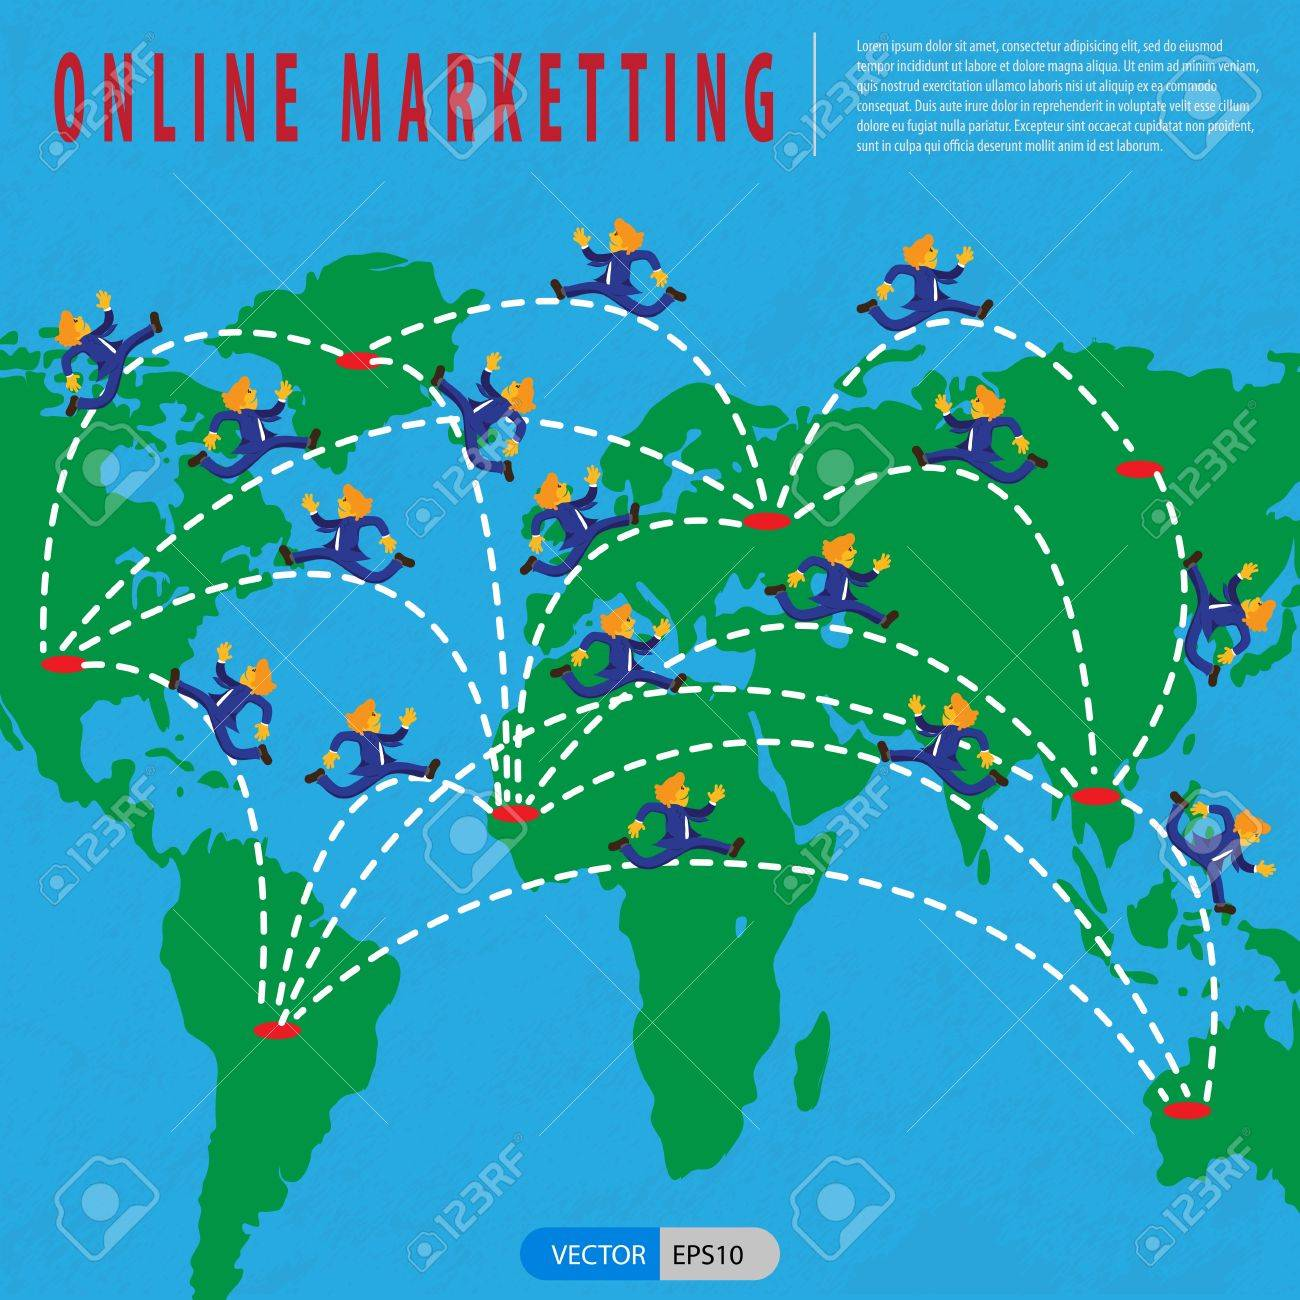 Online marketing platform is an integrated web-based platform that combines a business directory,search engine optimization tool,customer relationship management package and content management system Stock Vector - 18241004